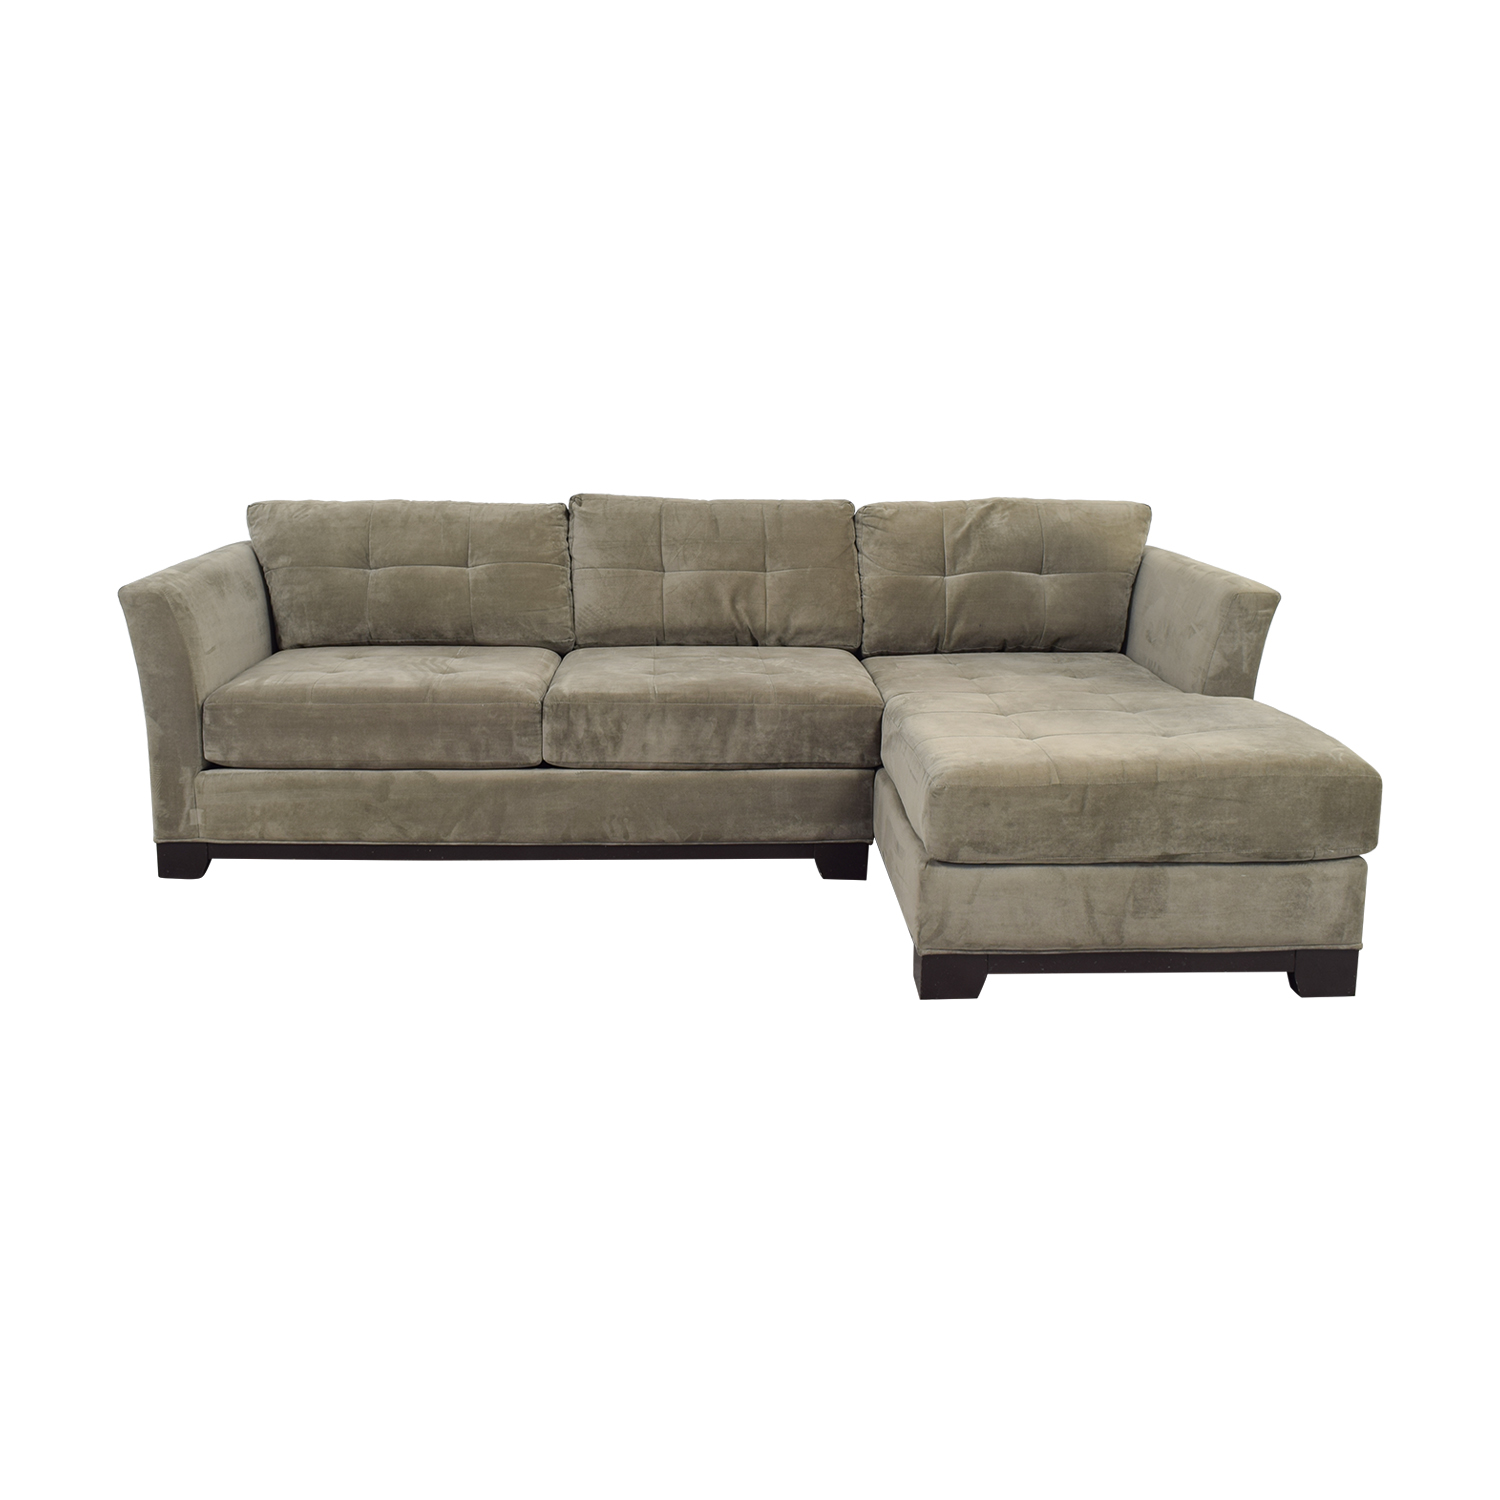 macy s elliot sofa best recliner brands india 79 off 39s grey microfiber semi tufted